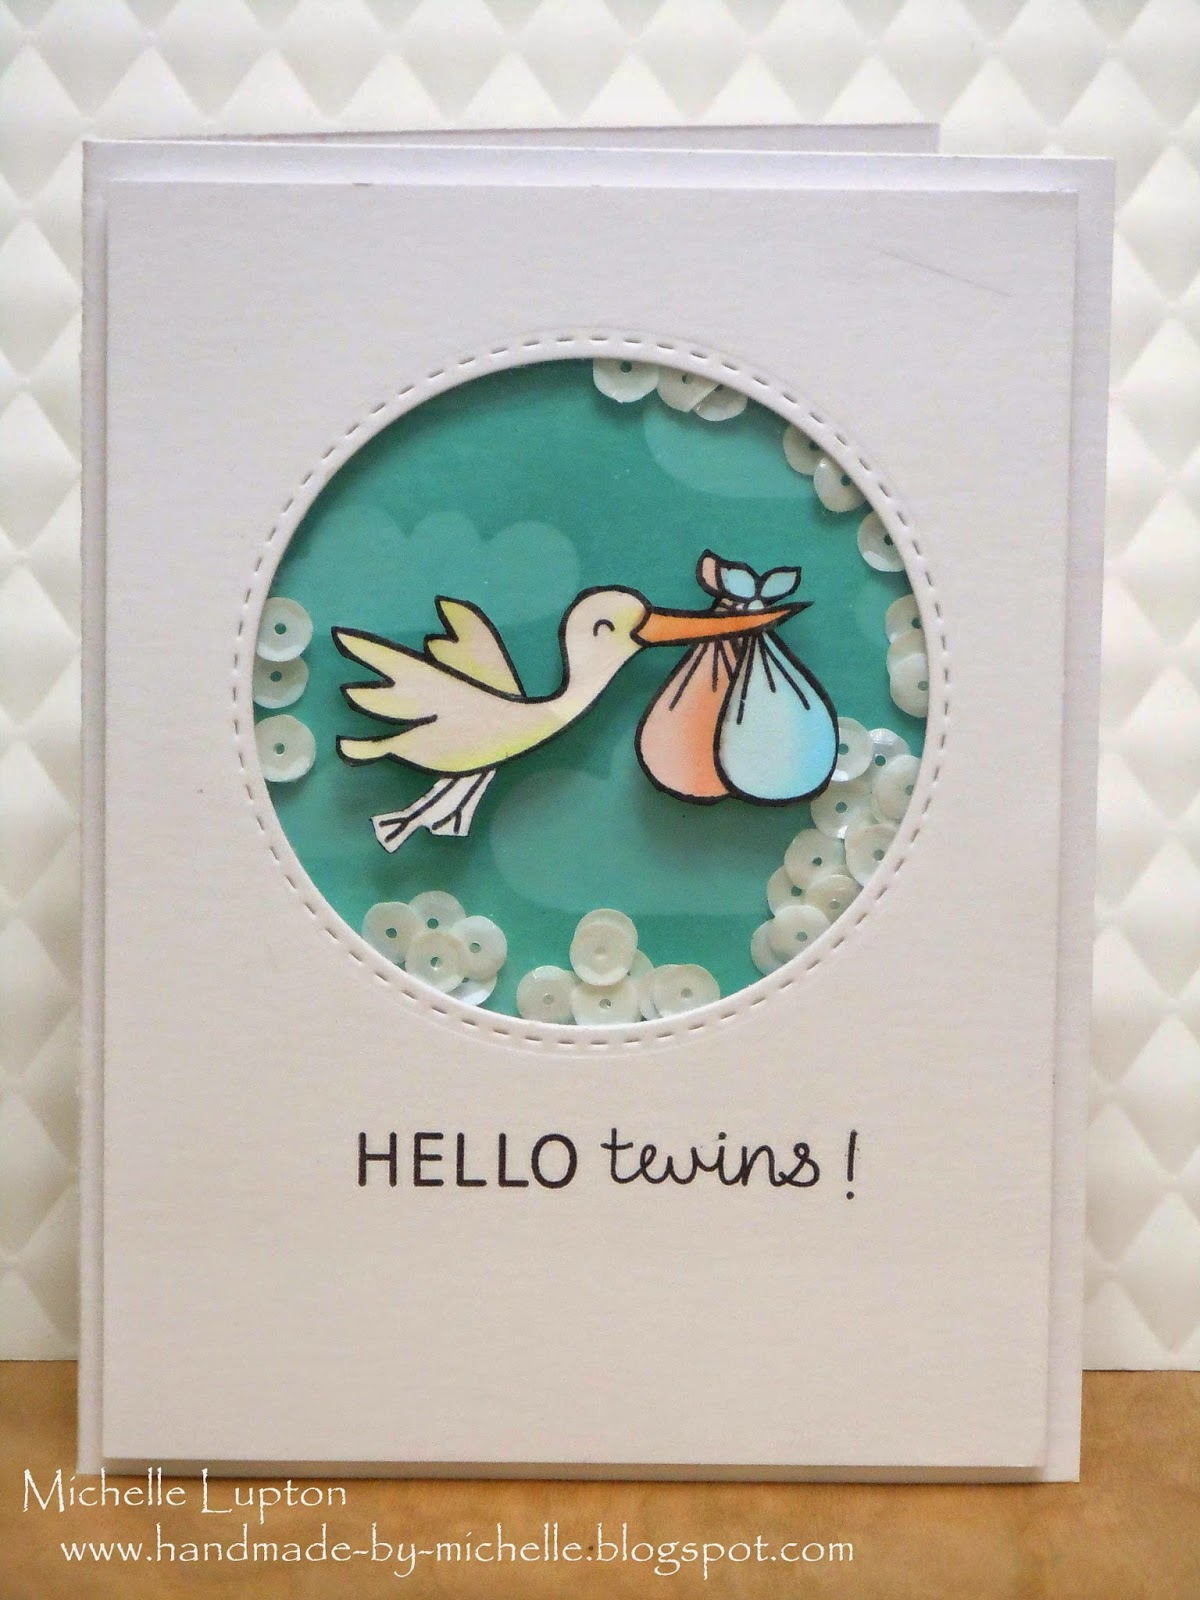 http://handmade-by-michelle.blogspot.com.au/2015/02/hello-twins.html